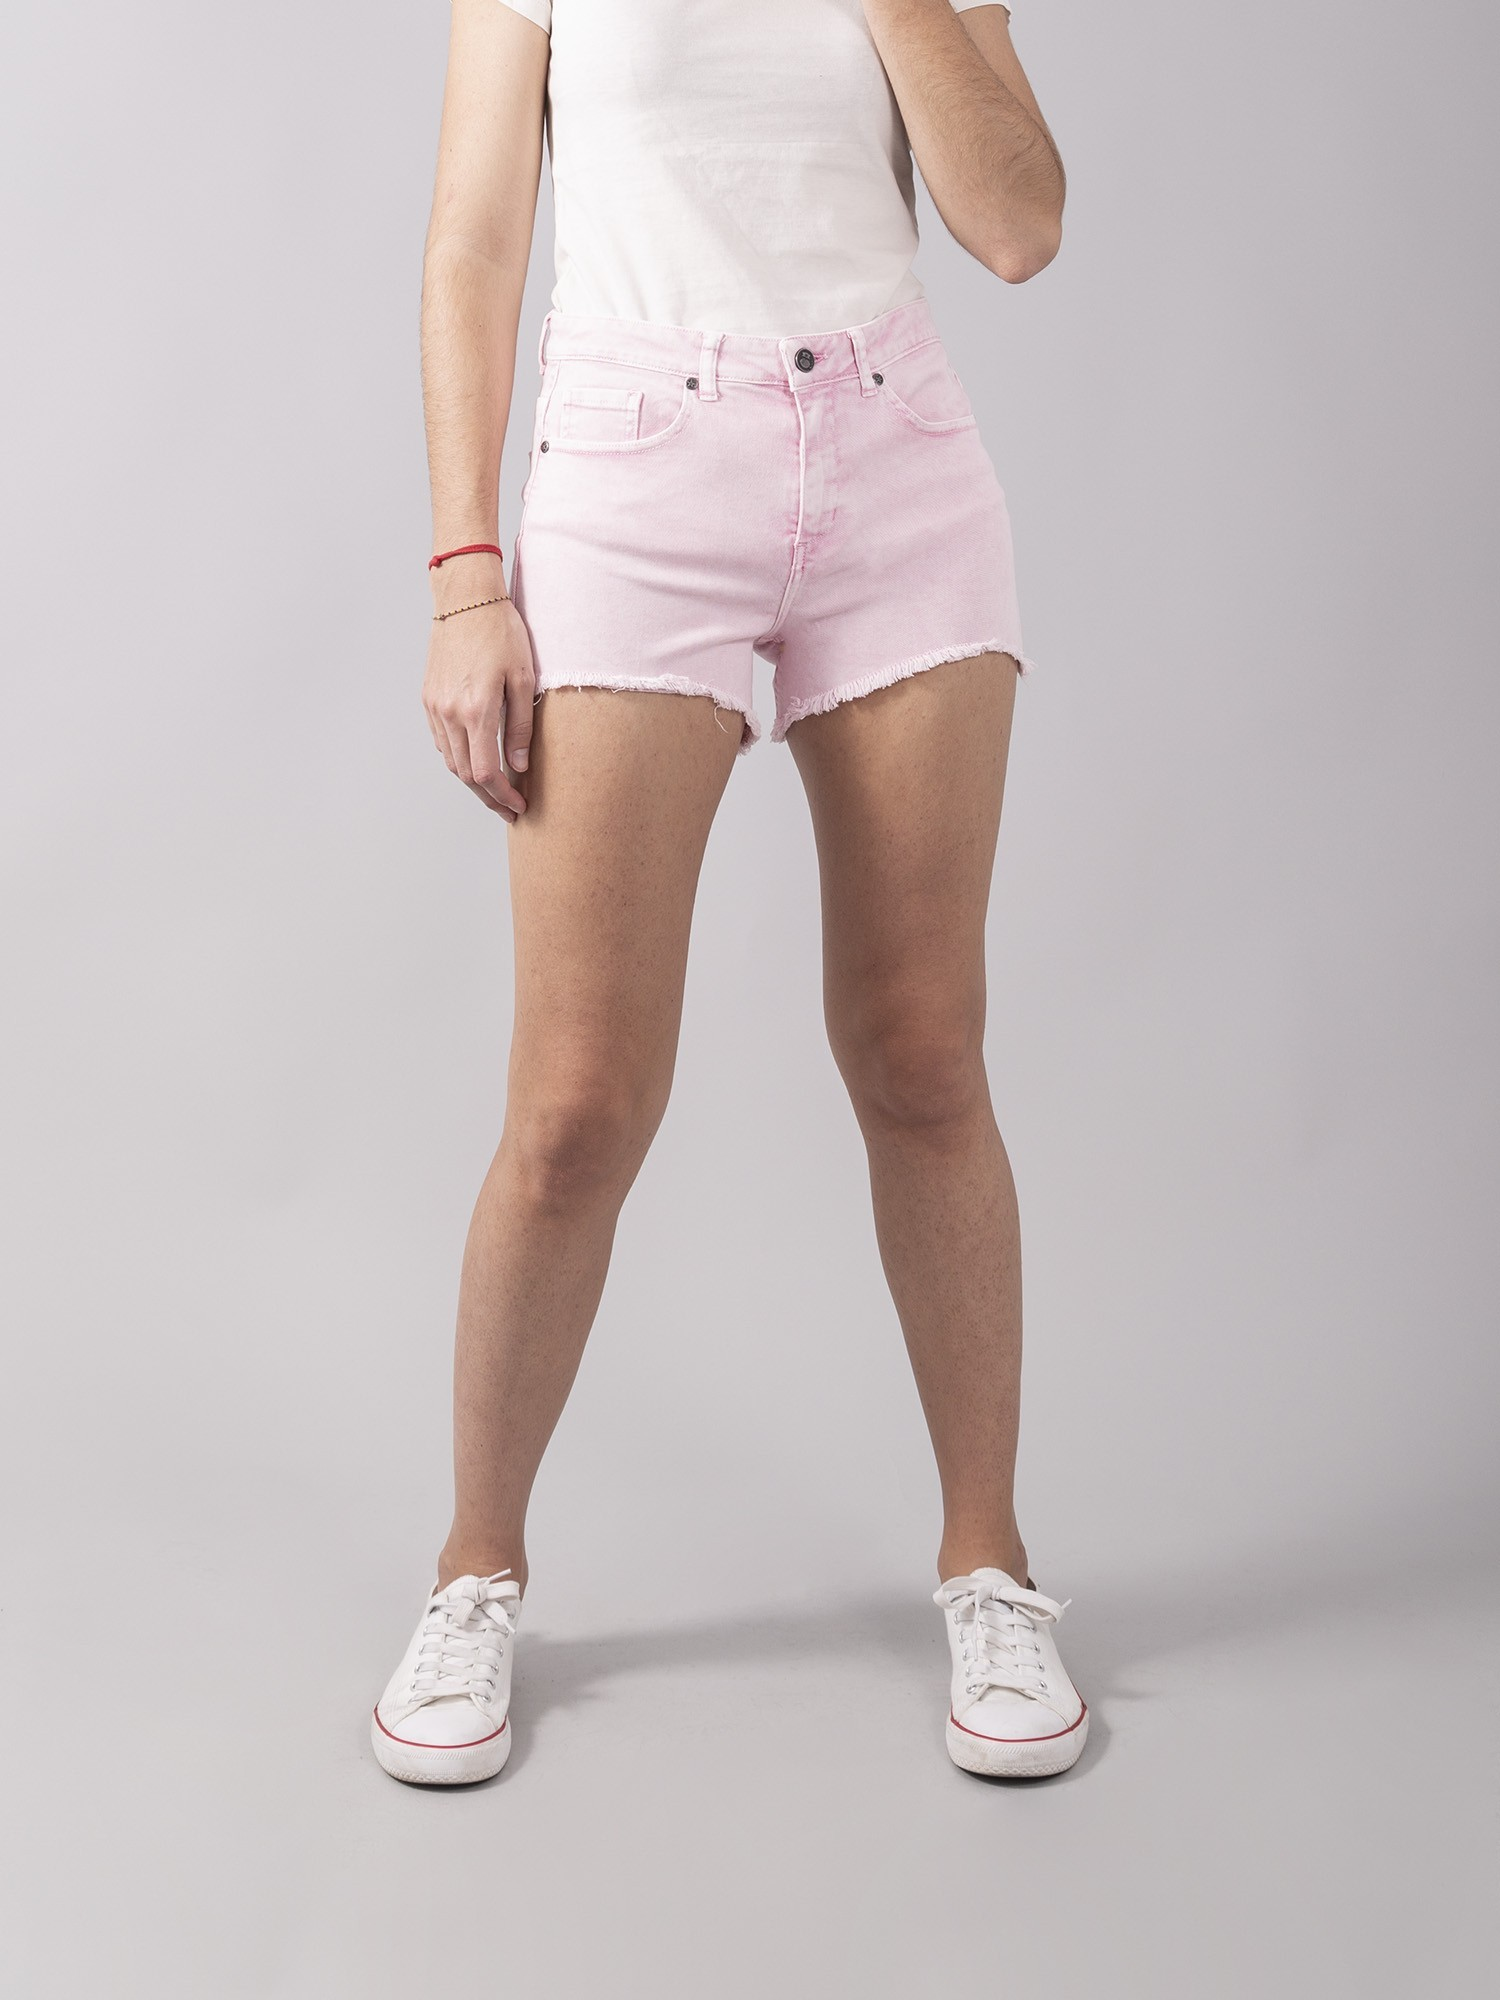 Shorts Sylvie Vintage Pink Denim